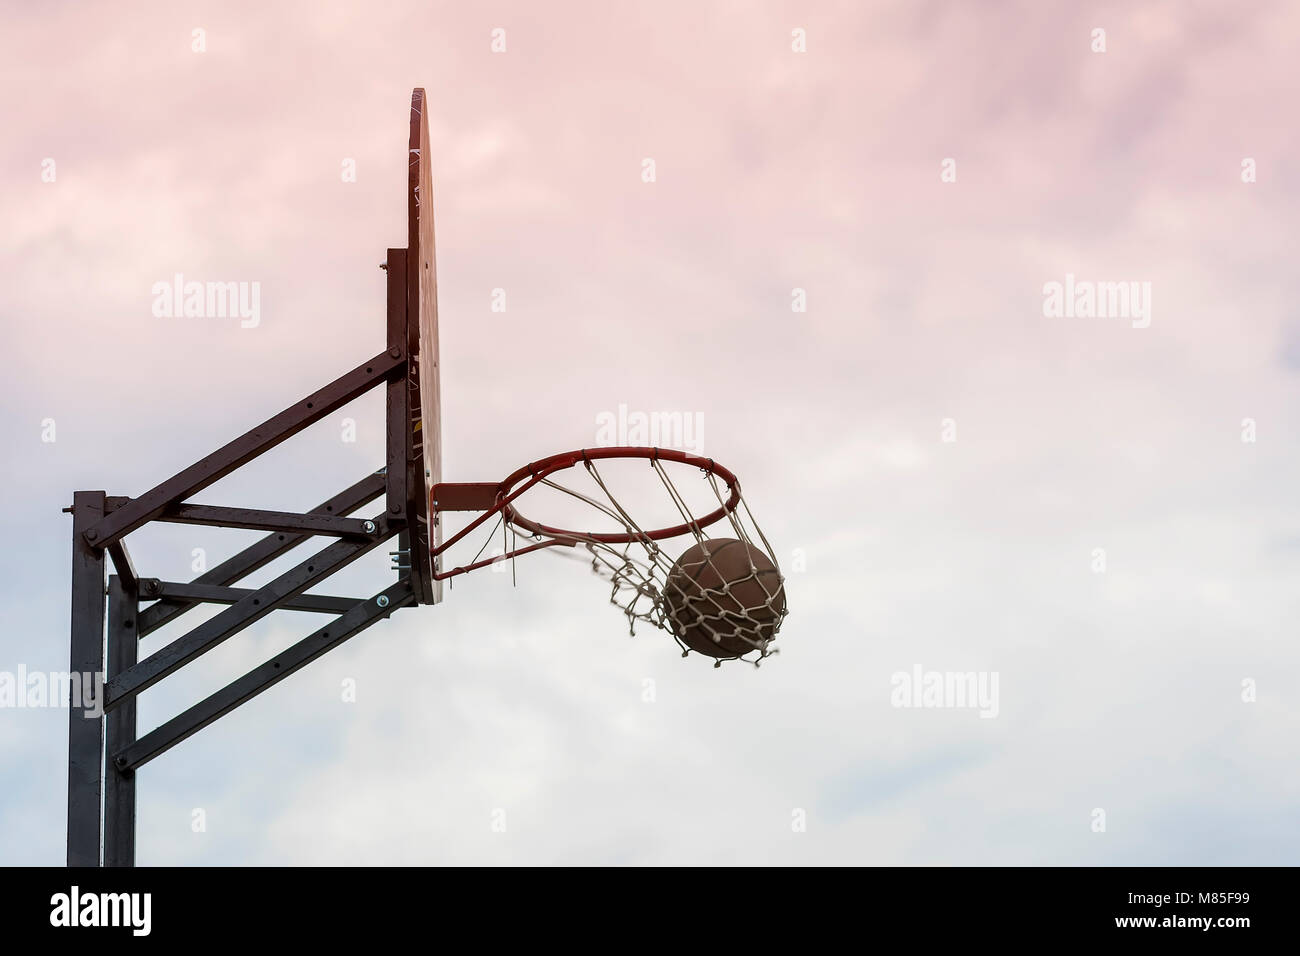 Street basketball game. Basketball shield, ball going through basket on background of sky. Concept of sport, hit - Stock Image